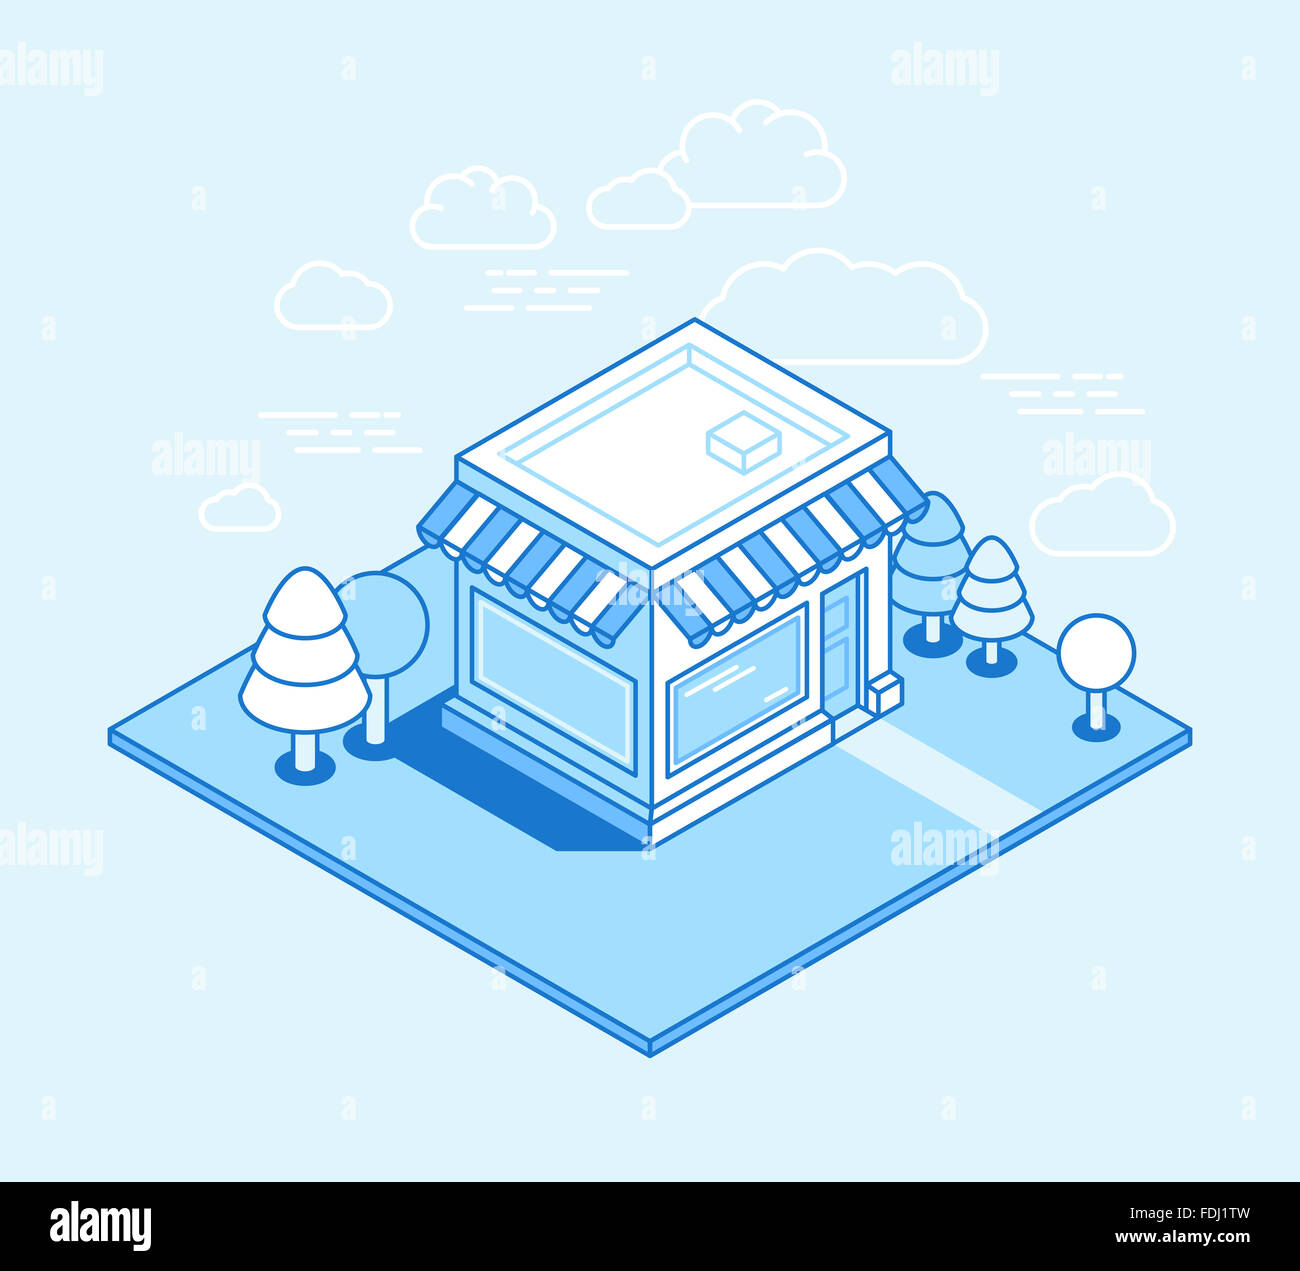 Shop building isometric illustration - online shop and store concept ...